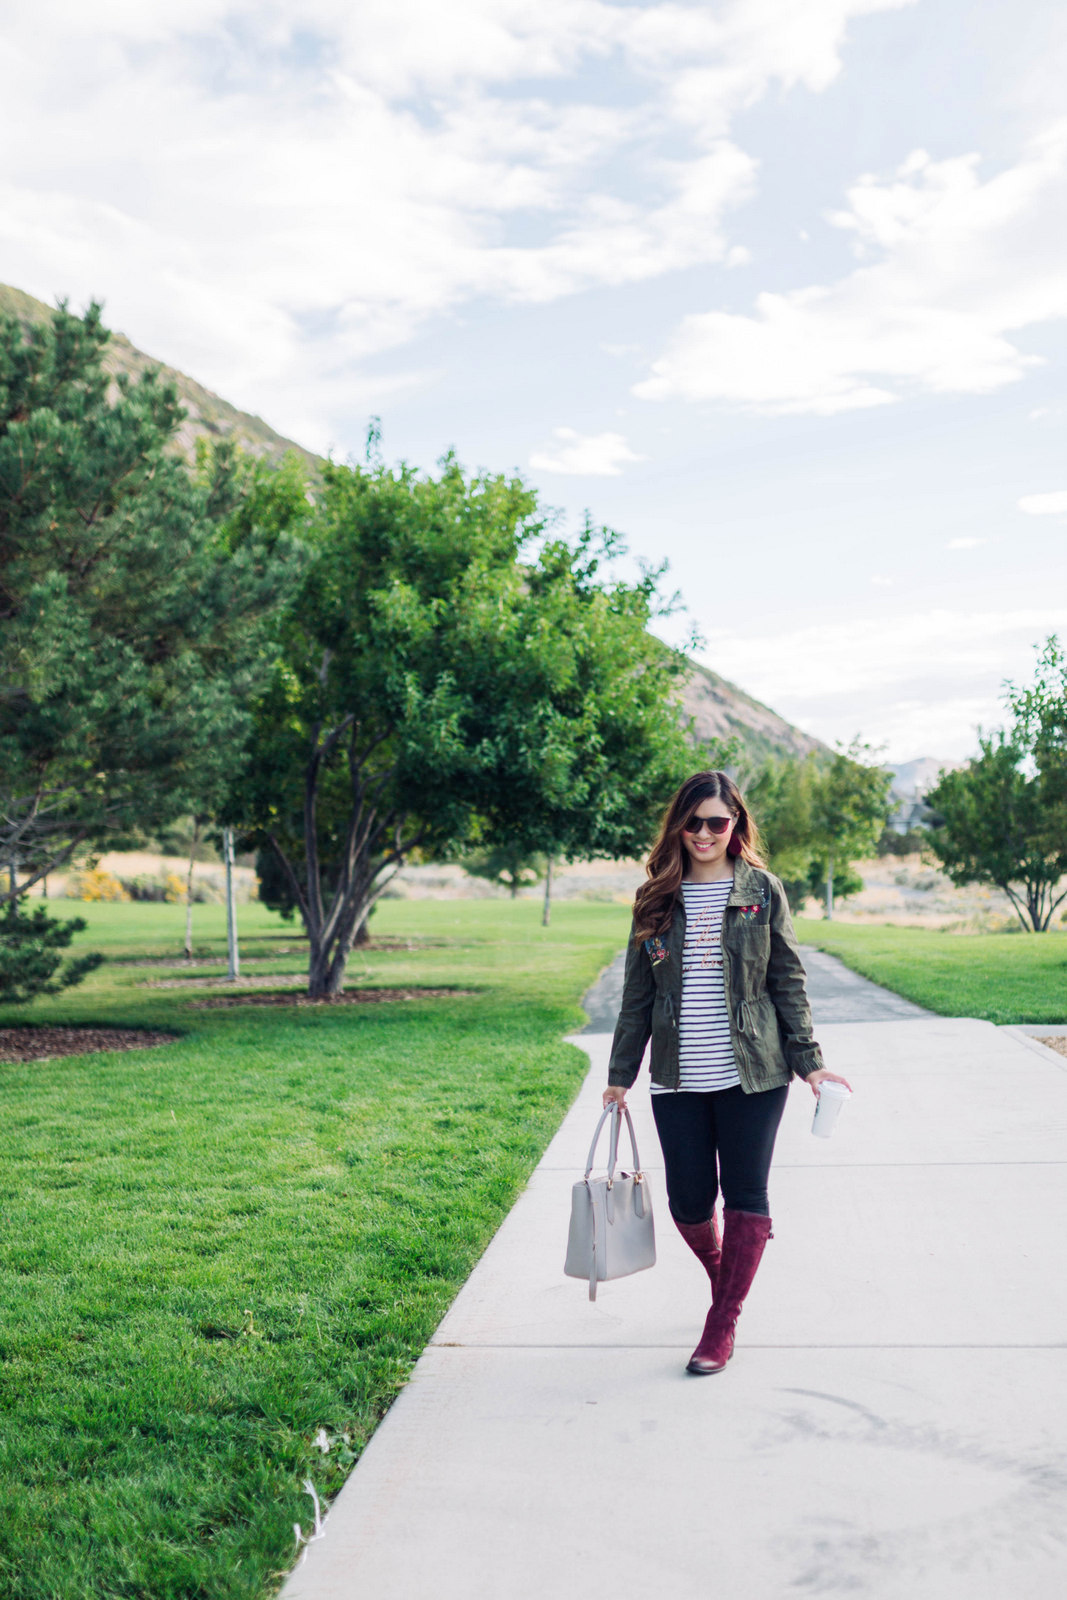 Over the knee boots from Zappos - Burgundy Knee High Boots For Fall by Utah fashion blogger Sandy A La Mode